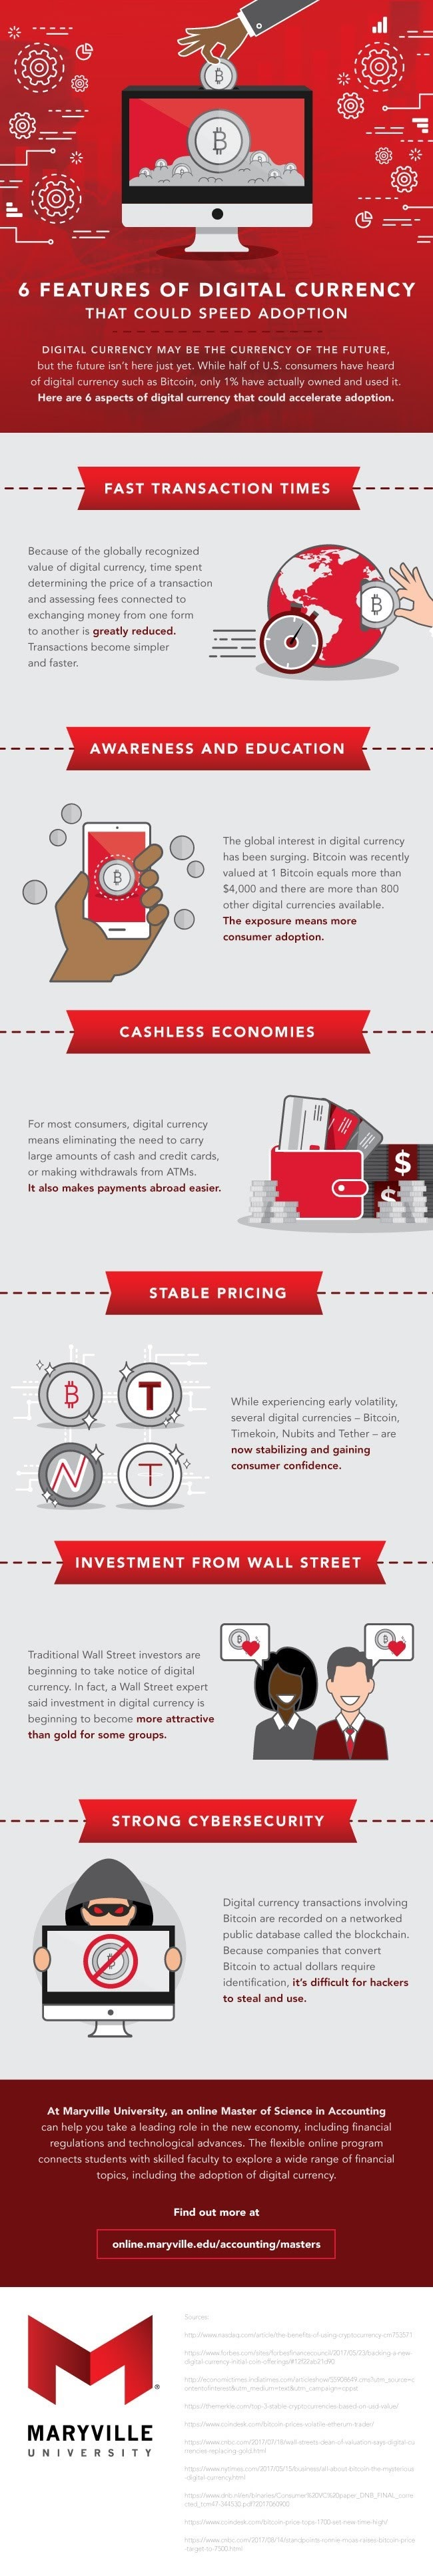 Digital currency features that can speed up adoption #infographic